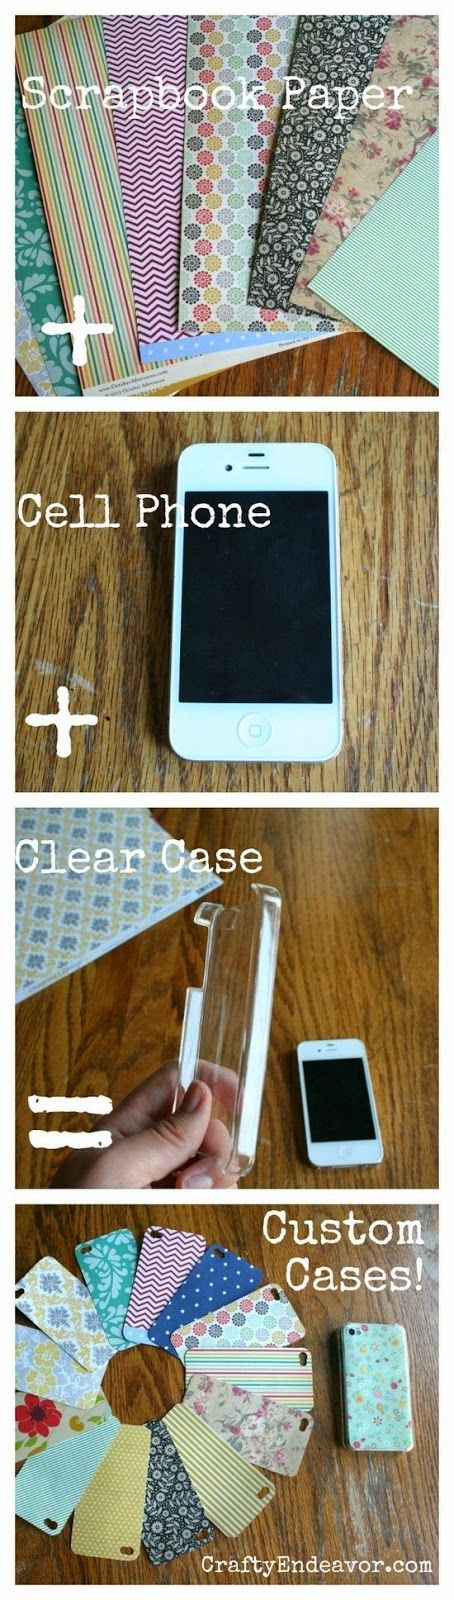 How to custom Cases to your cell phone | DIY  Crafts Tutorials